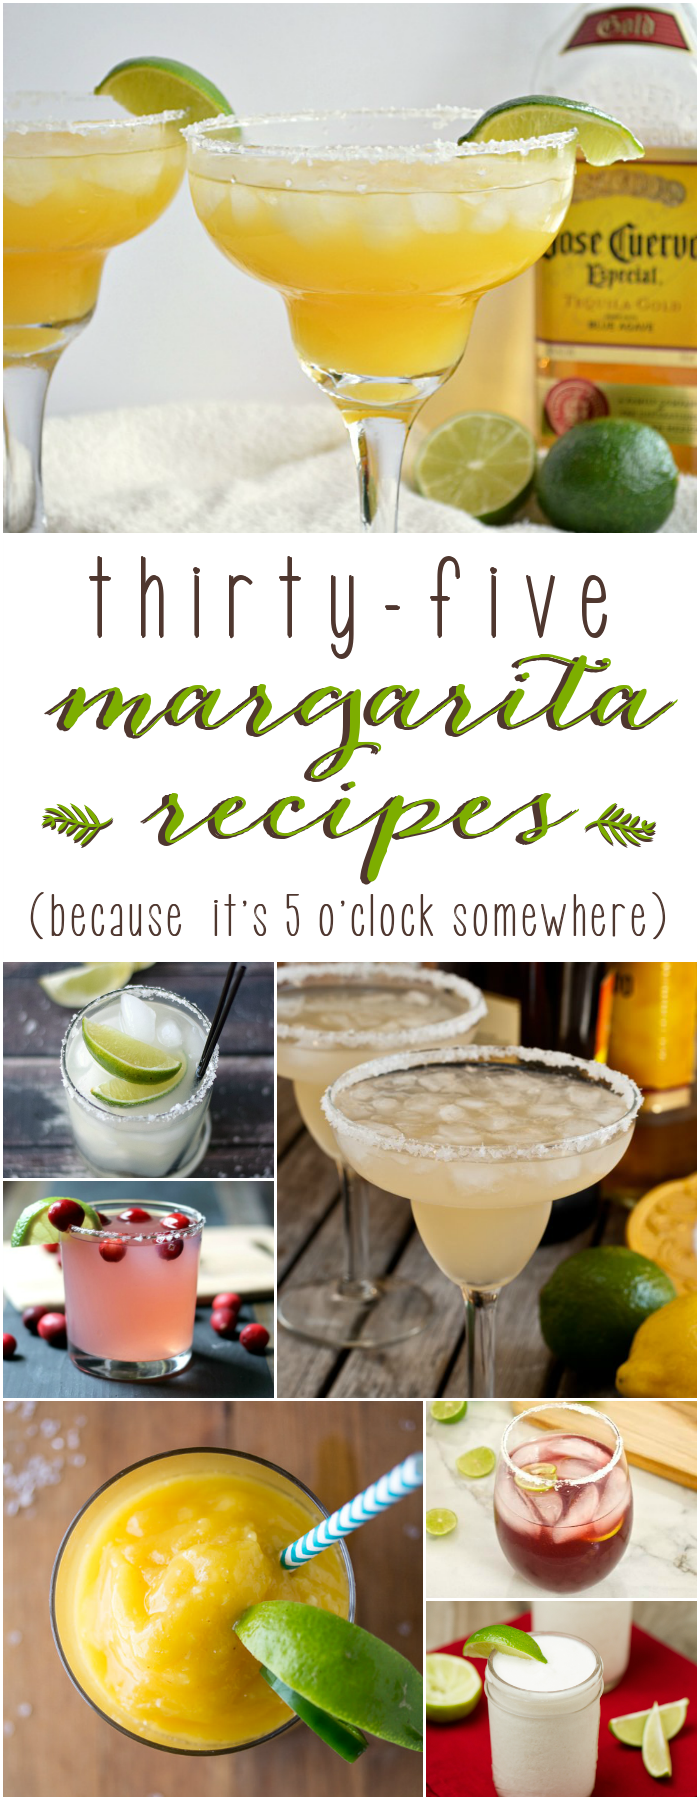 35 Margarita recipes .... because it's 5 o'clock somewhere!